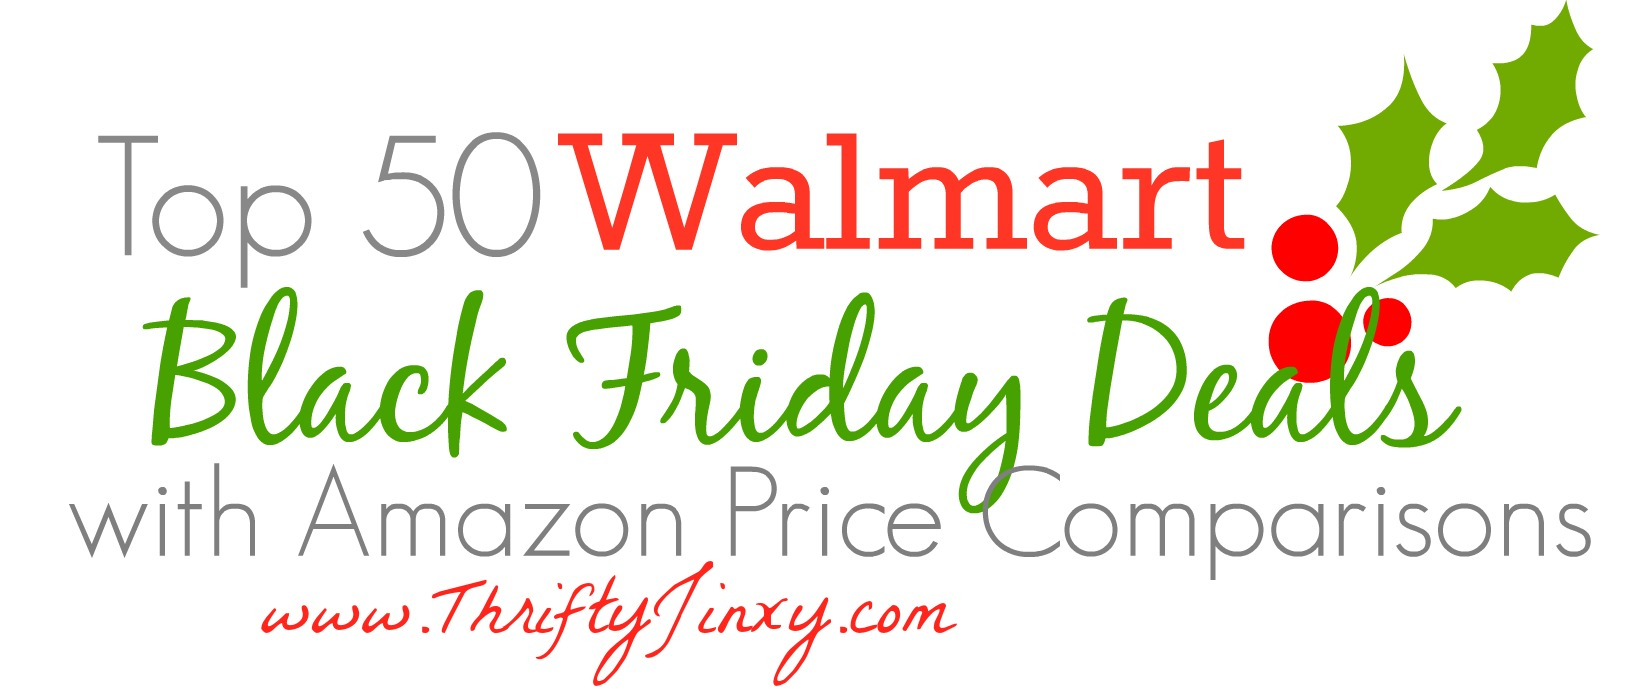 Top 50 Walmart Black Friday Deals with Amazon Price Comparisons!